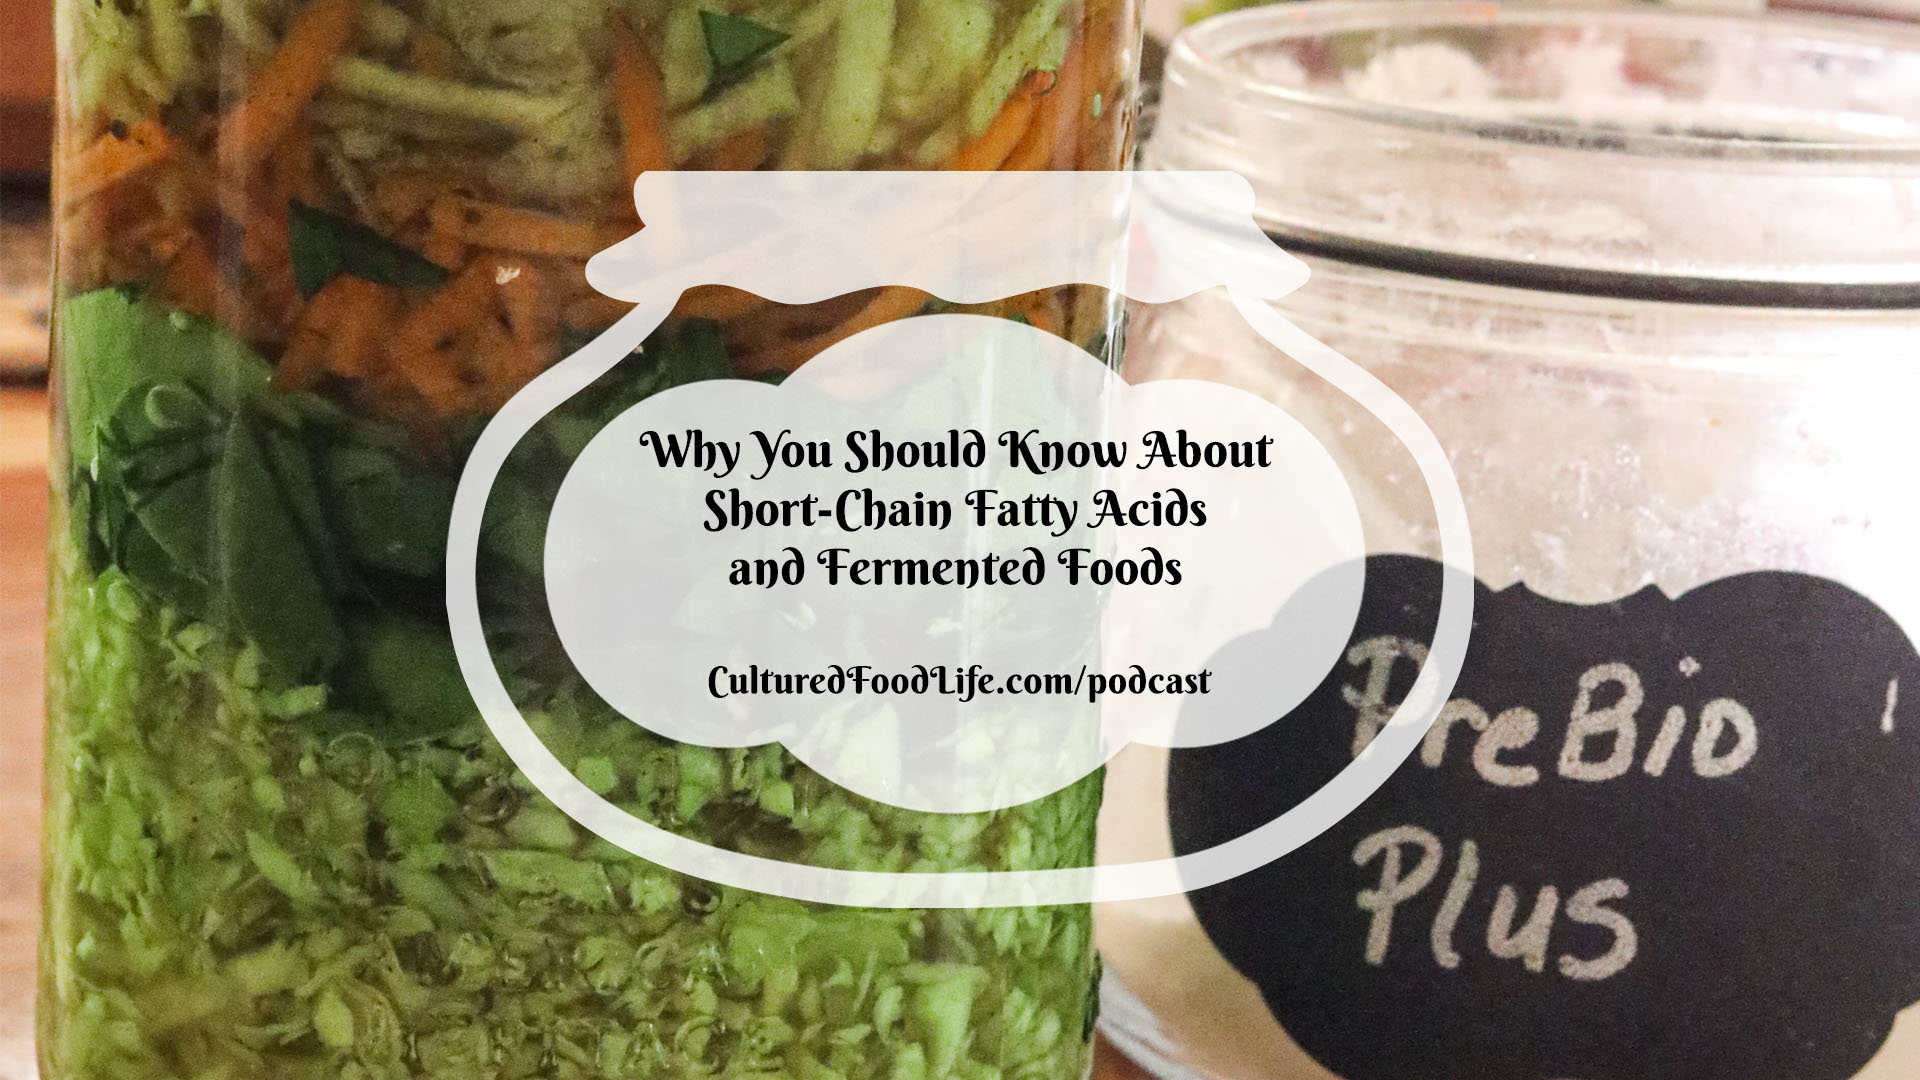 Why You Should Know About Short Chain Fatty Acids and Fermented Foods